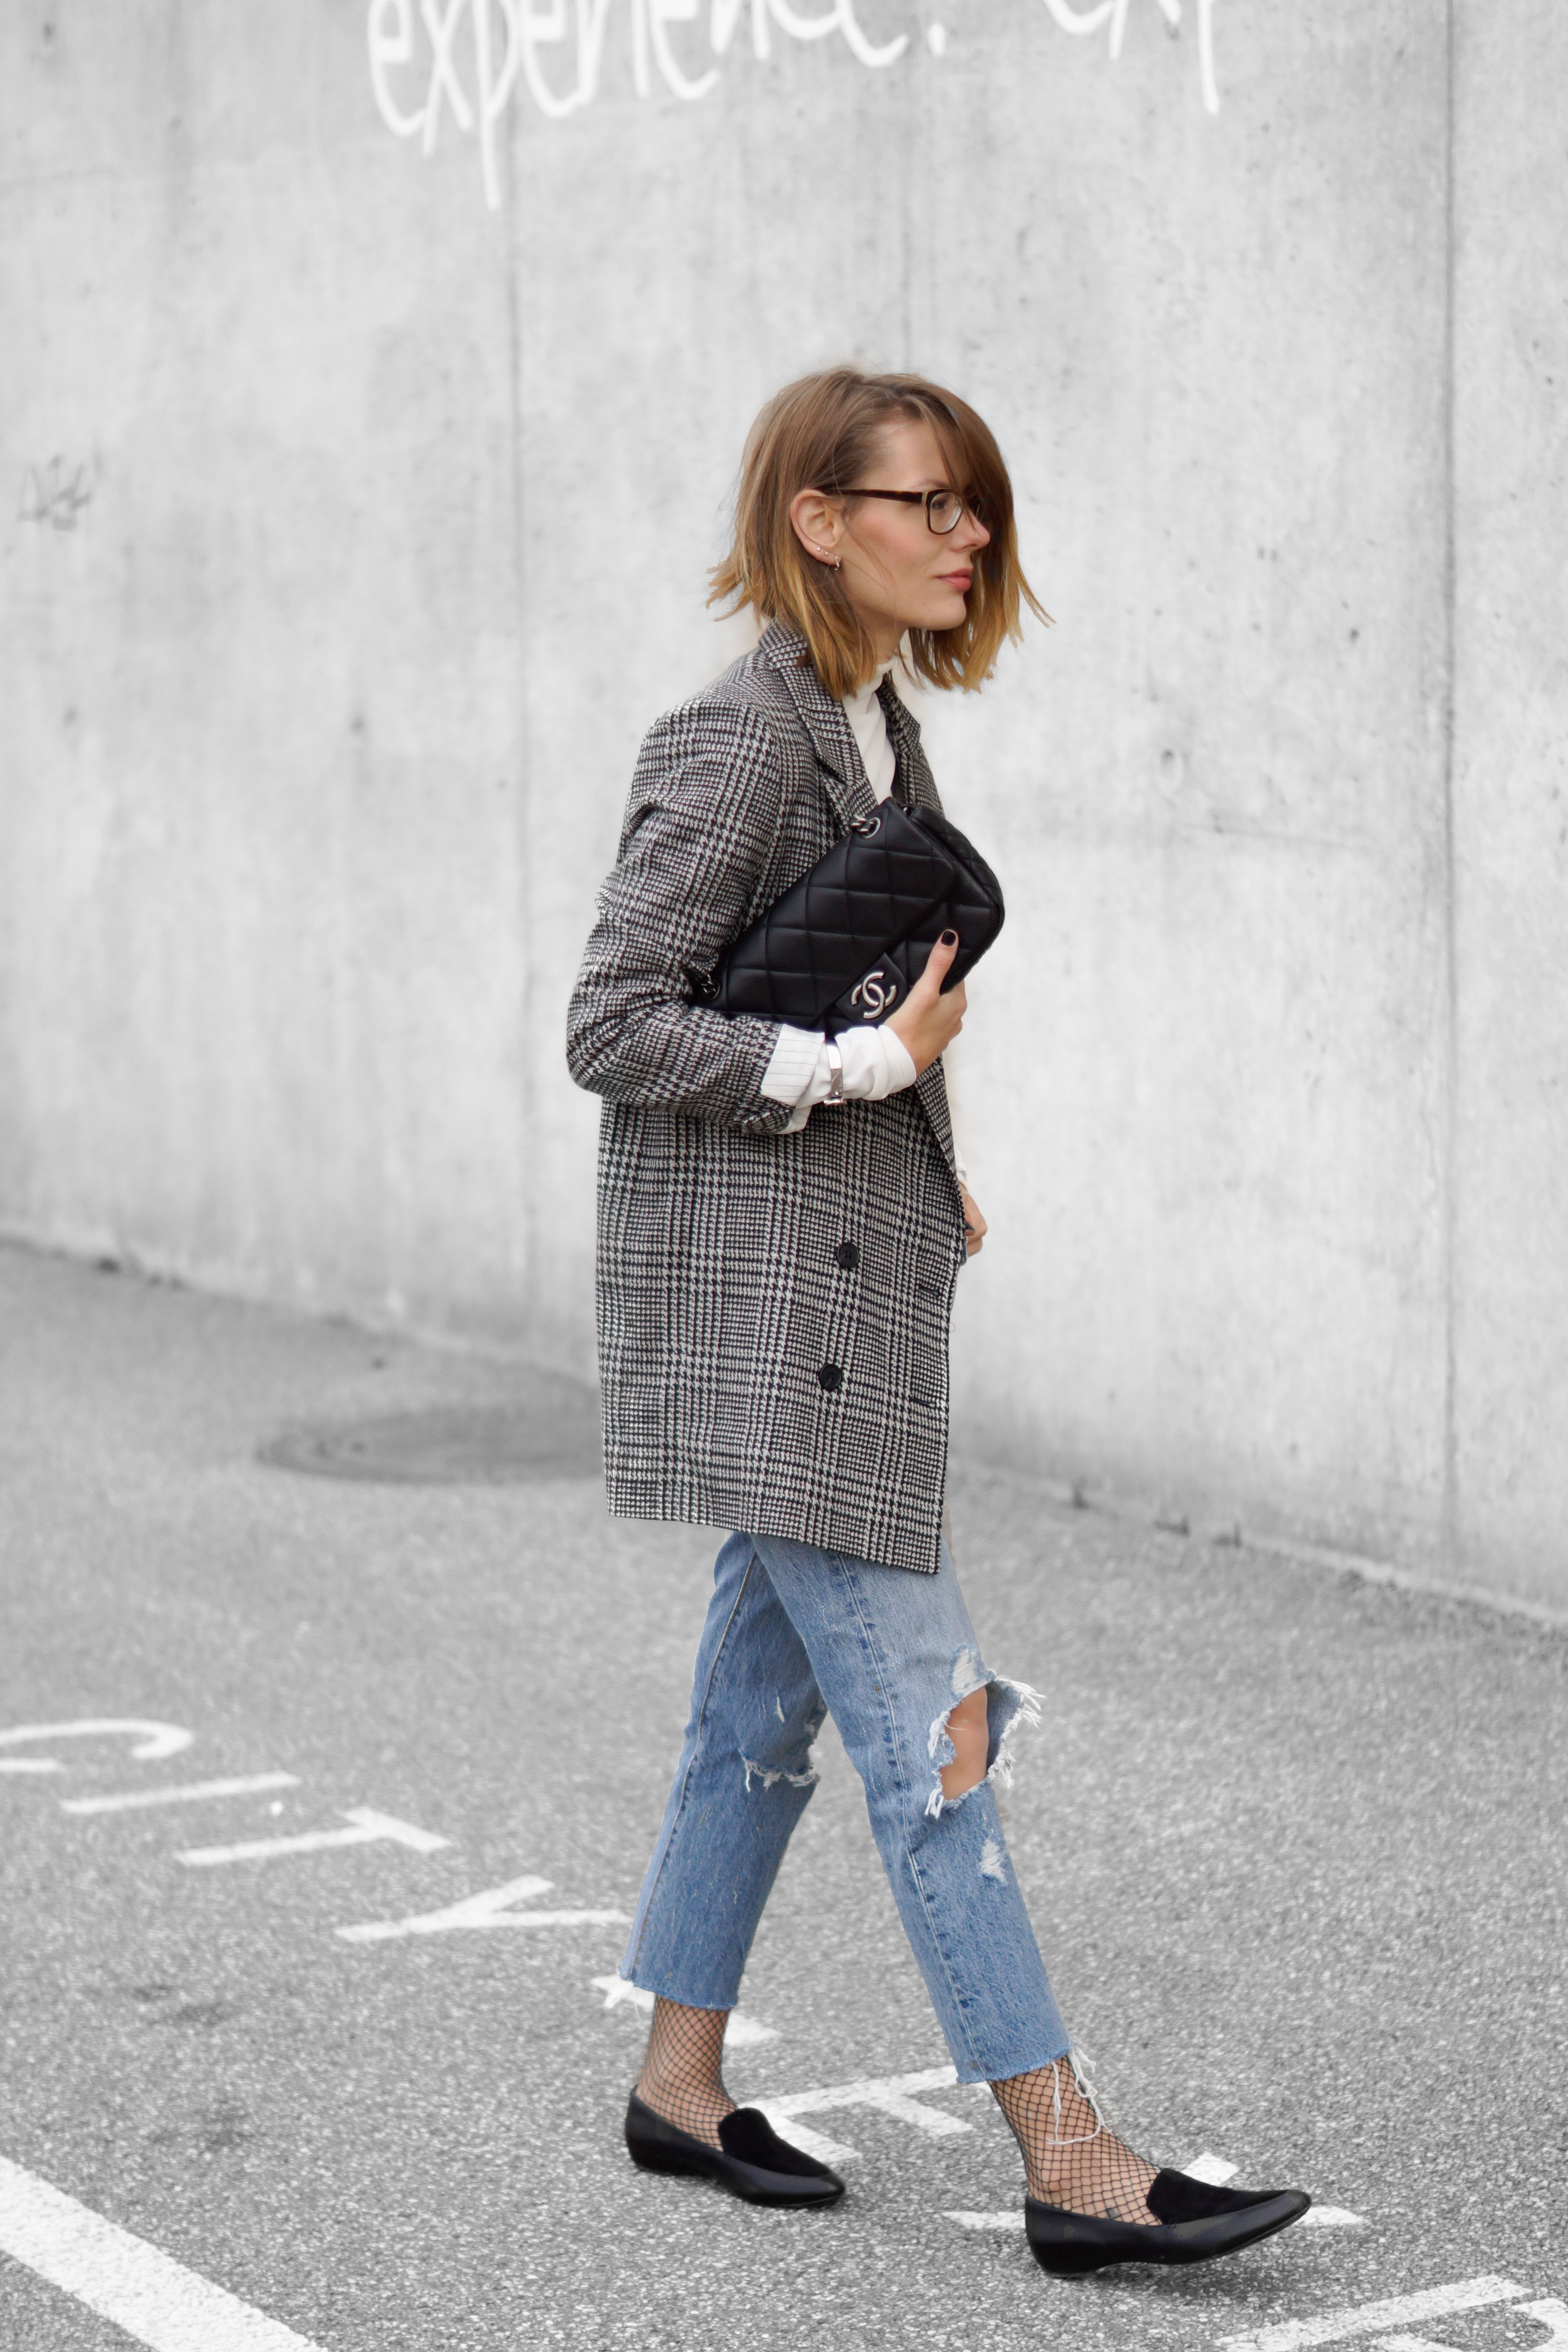 THE HOUNDSTOOTH CHECK BLAZER | h&m houndstooth check blazer, h&m turtleneck shirt, levi's 501CT denim, h&m fishnet socks, jukserei and pandora rings, tiffany&co and h&m bracelets, chanel bag, geox loafers